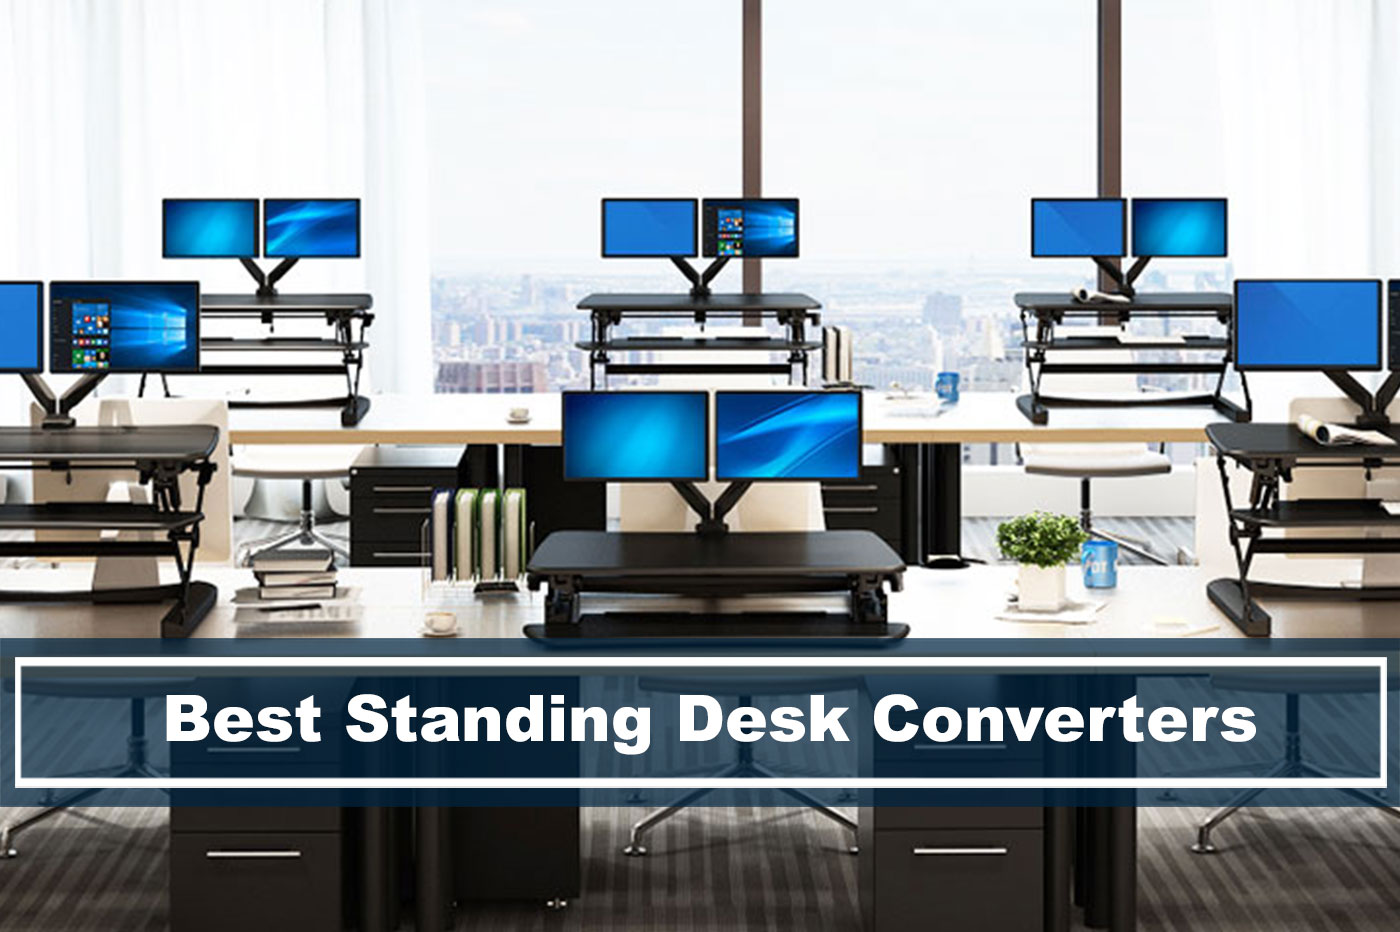 Best Standing Desk Converters Buyers Guide 2019